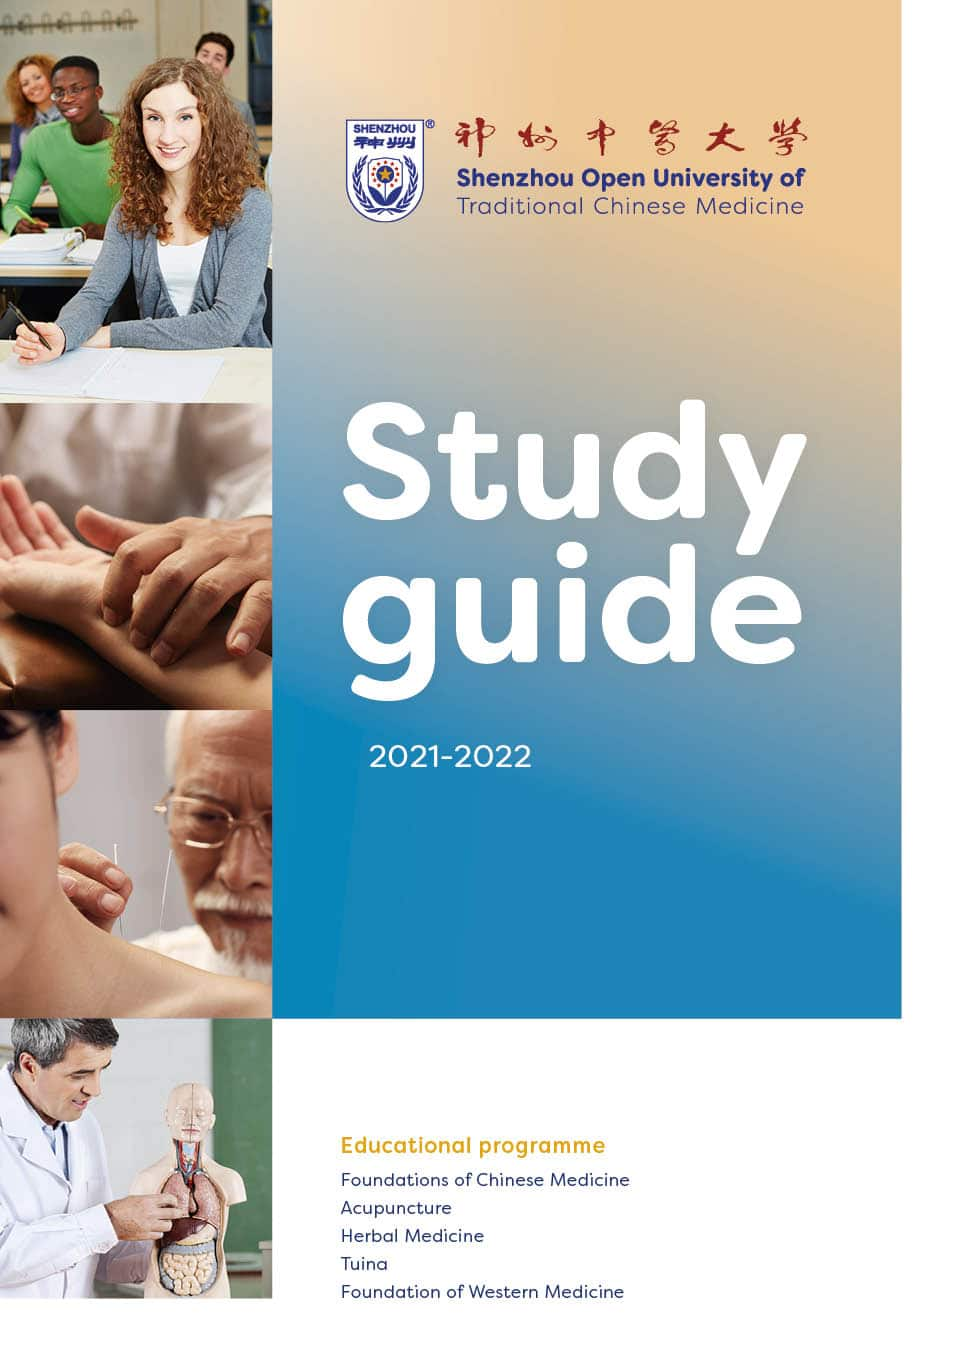 Study guide SOU 2021-2022_GB